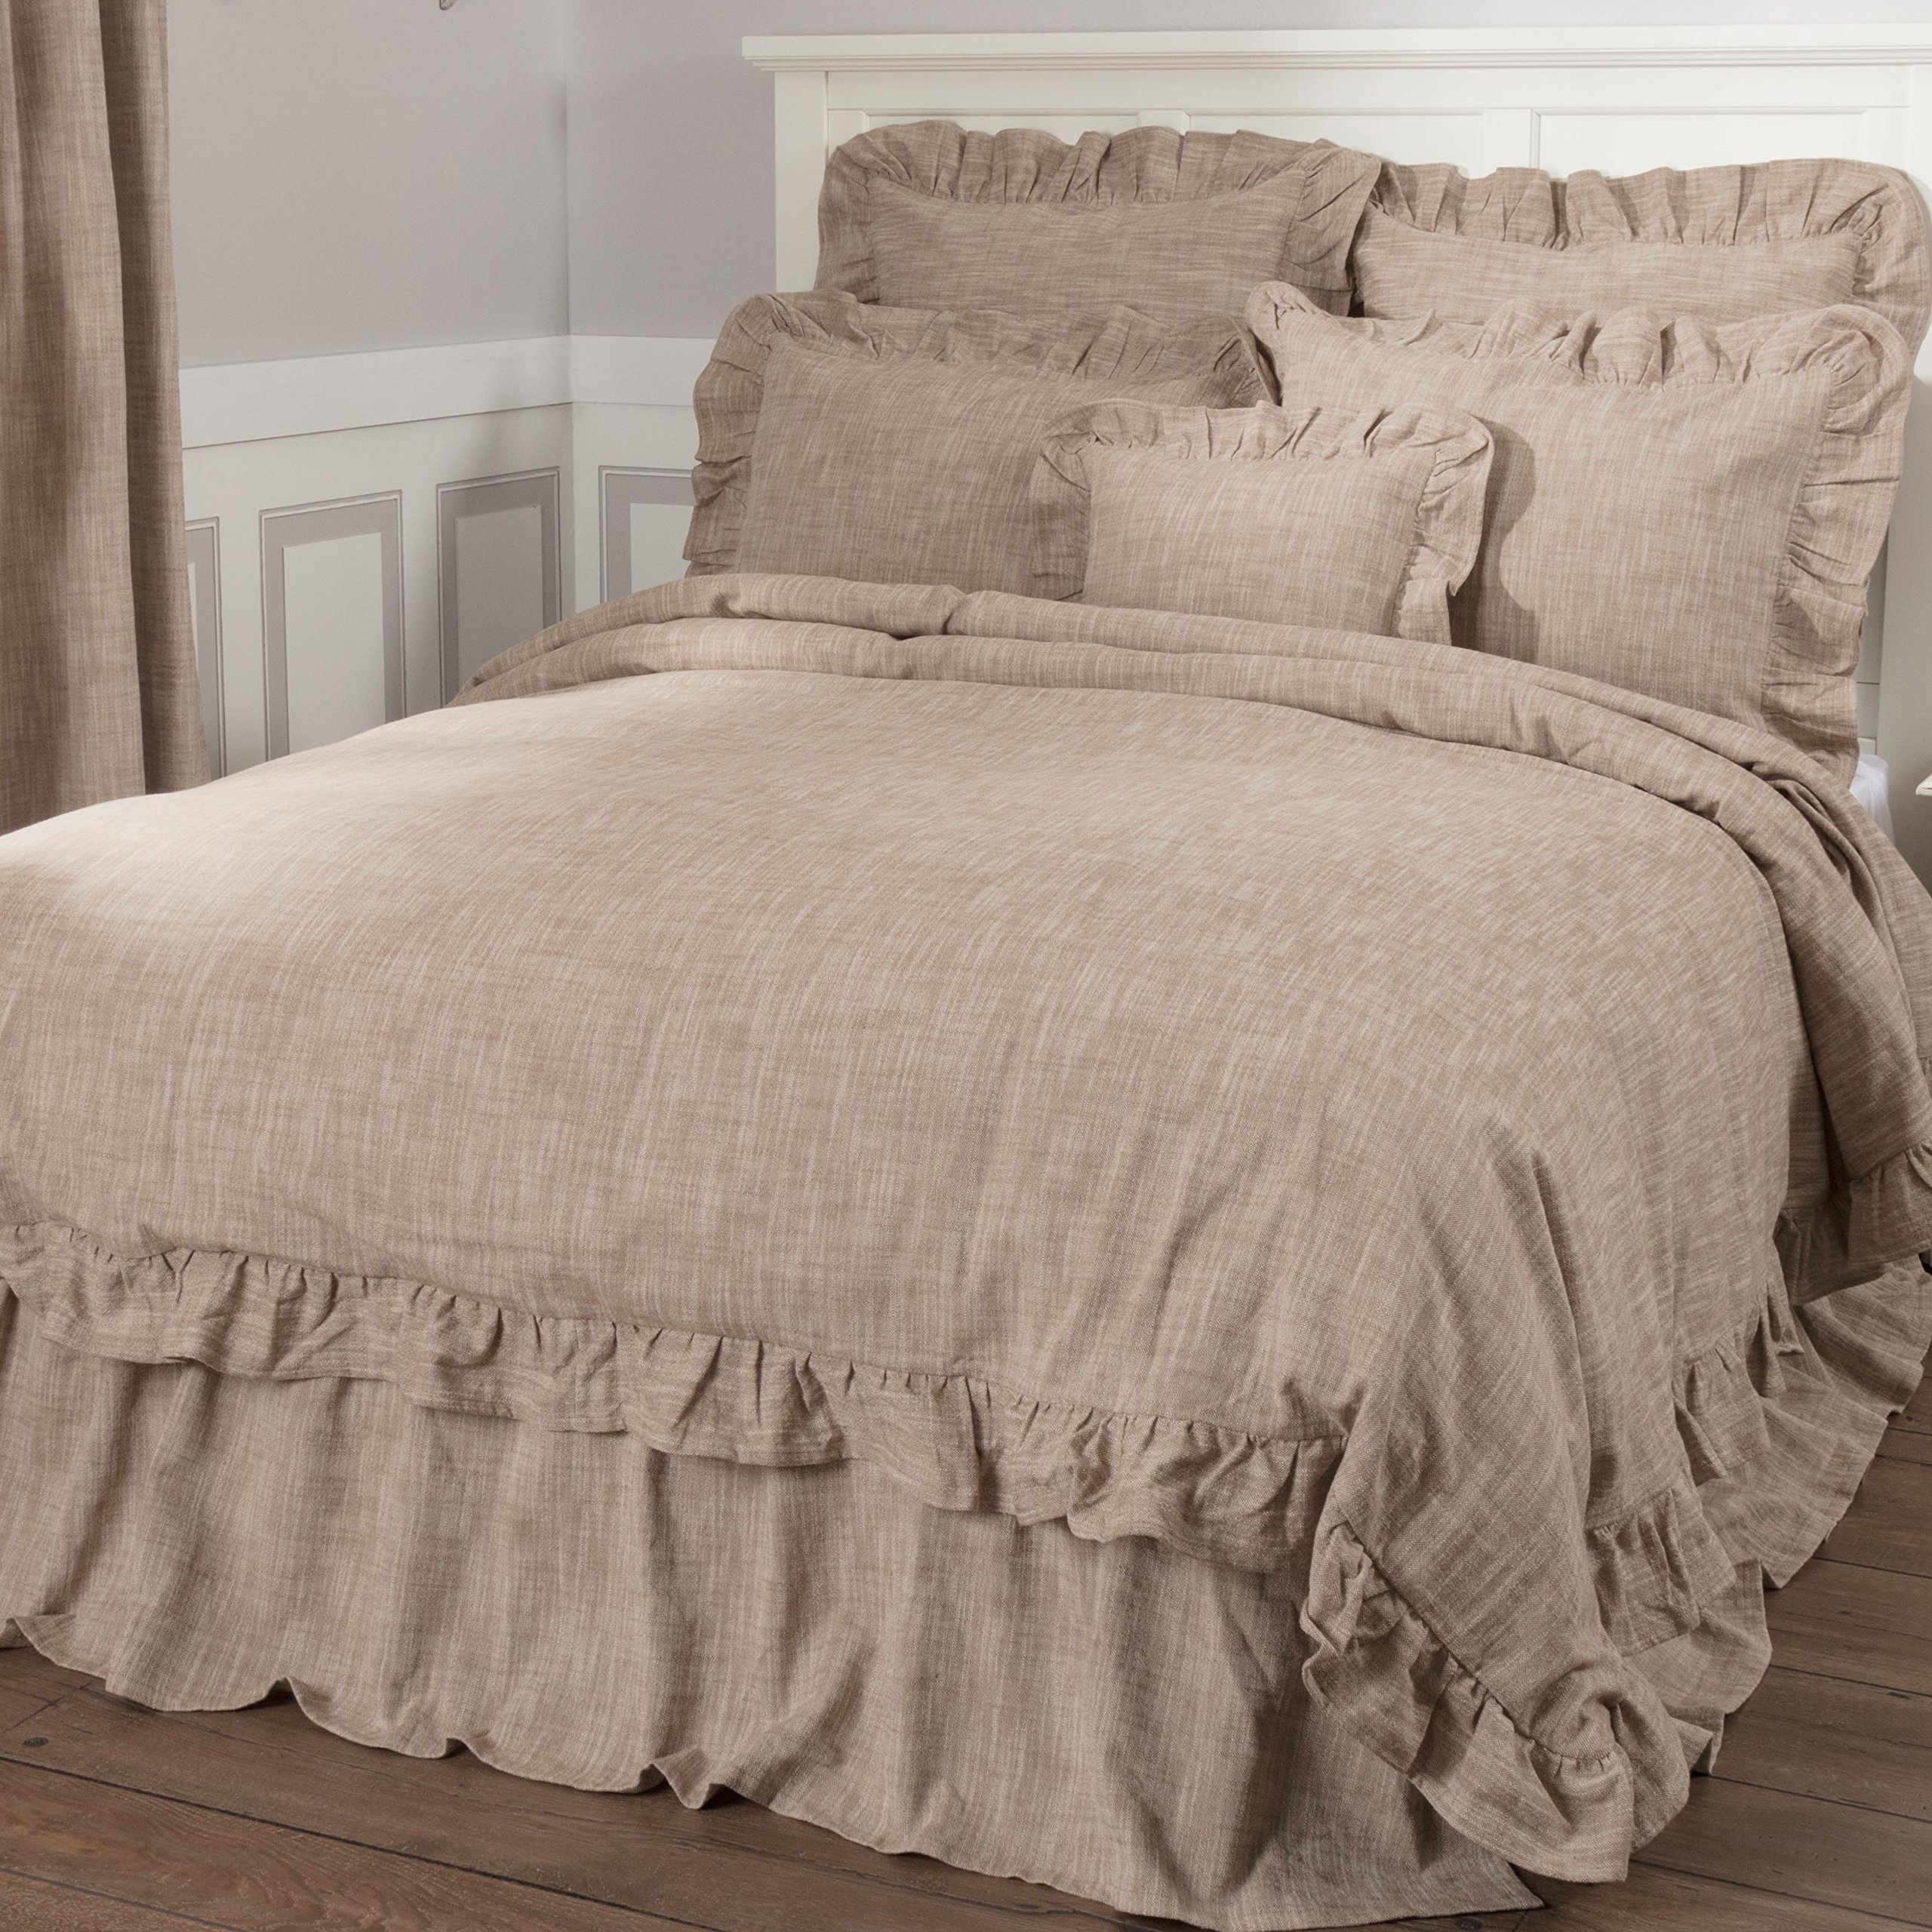 Ashley Taupe Ruffled Duvet Cover, King Size 92x108, Farmhouse Style Dark Beige Comforter Cover